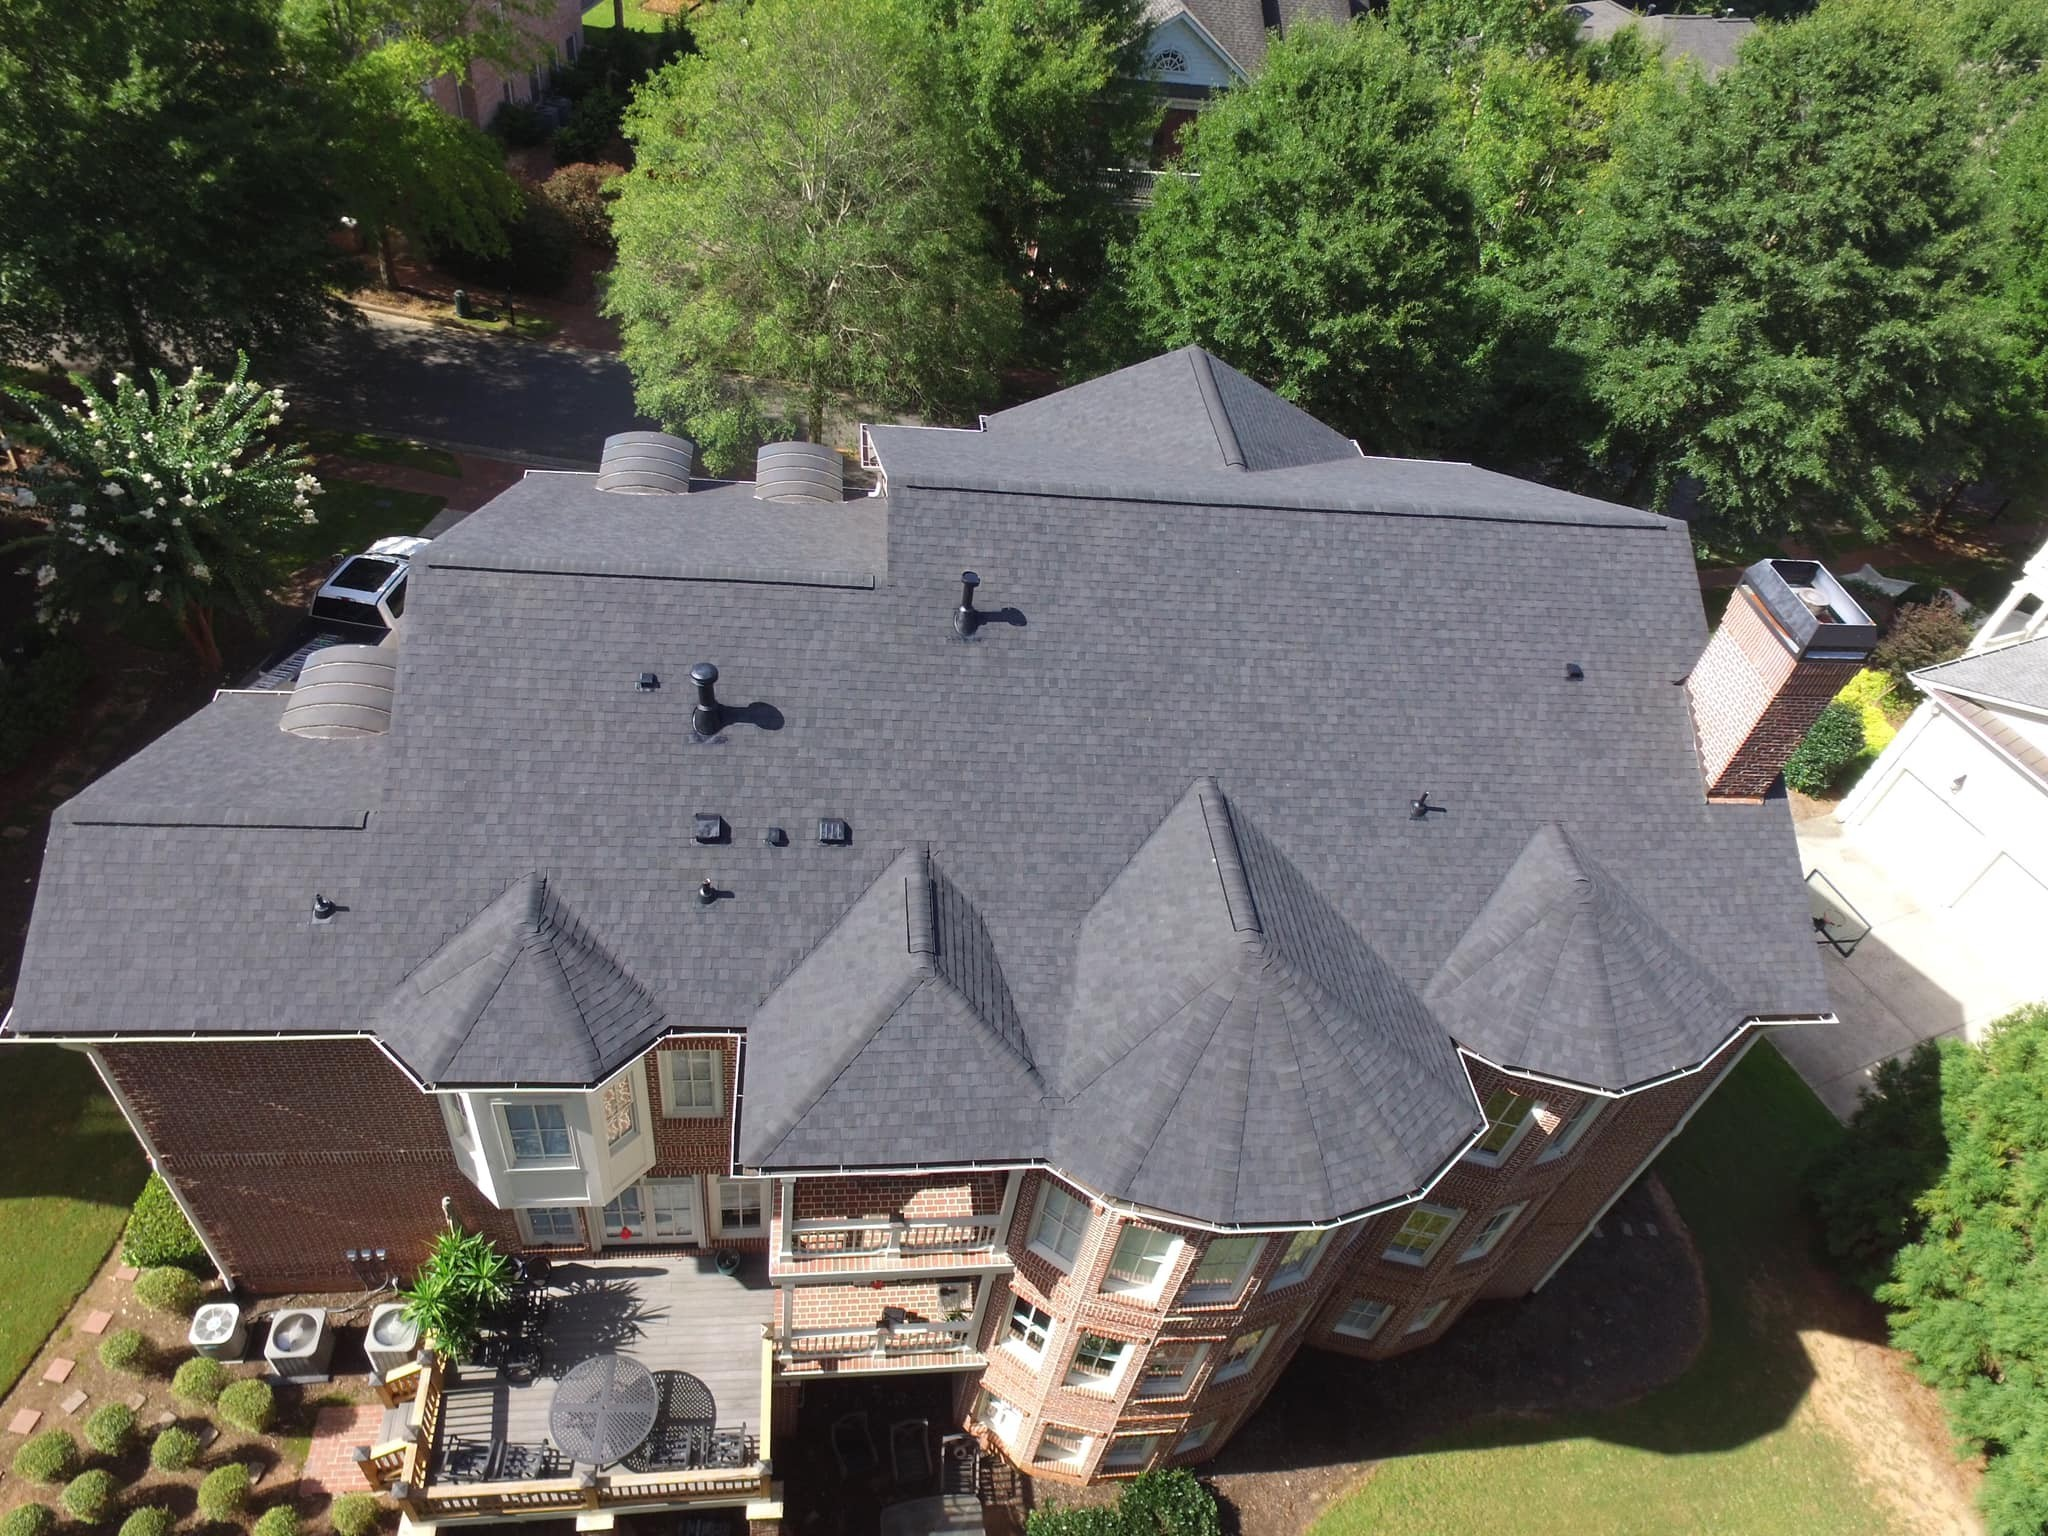 Roofing replacement near me Suwanee GA - The Roofing HQ